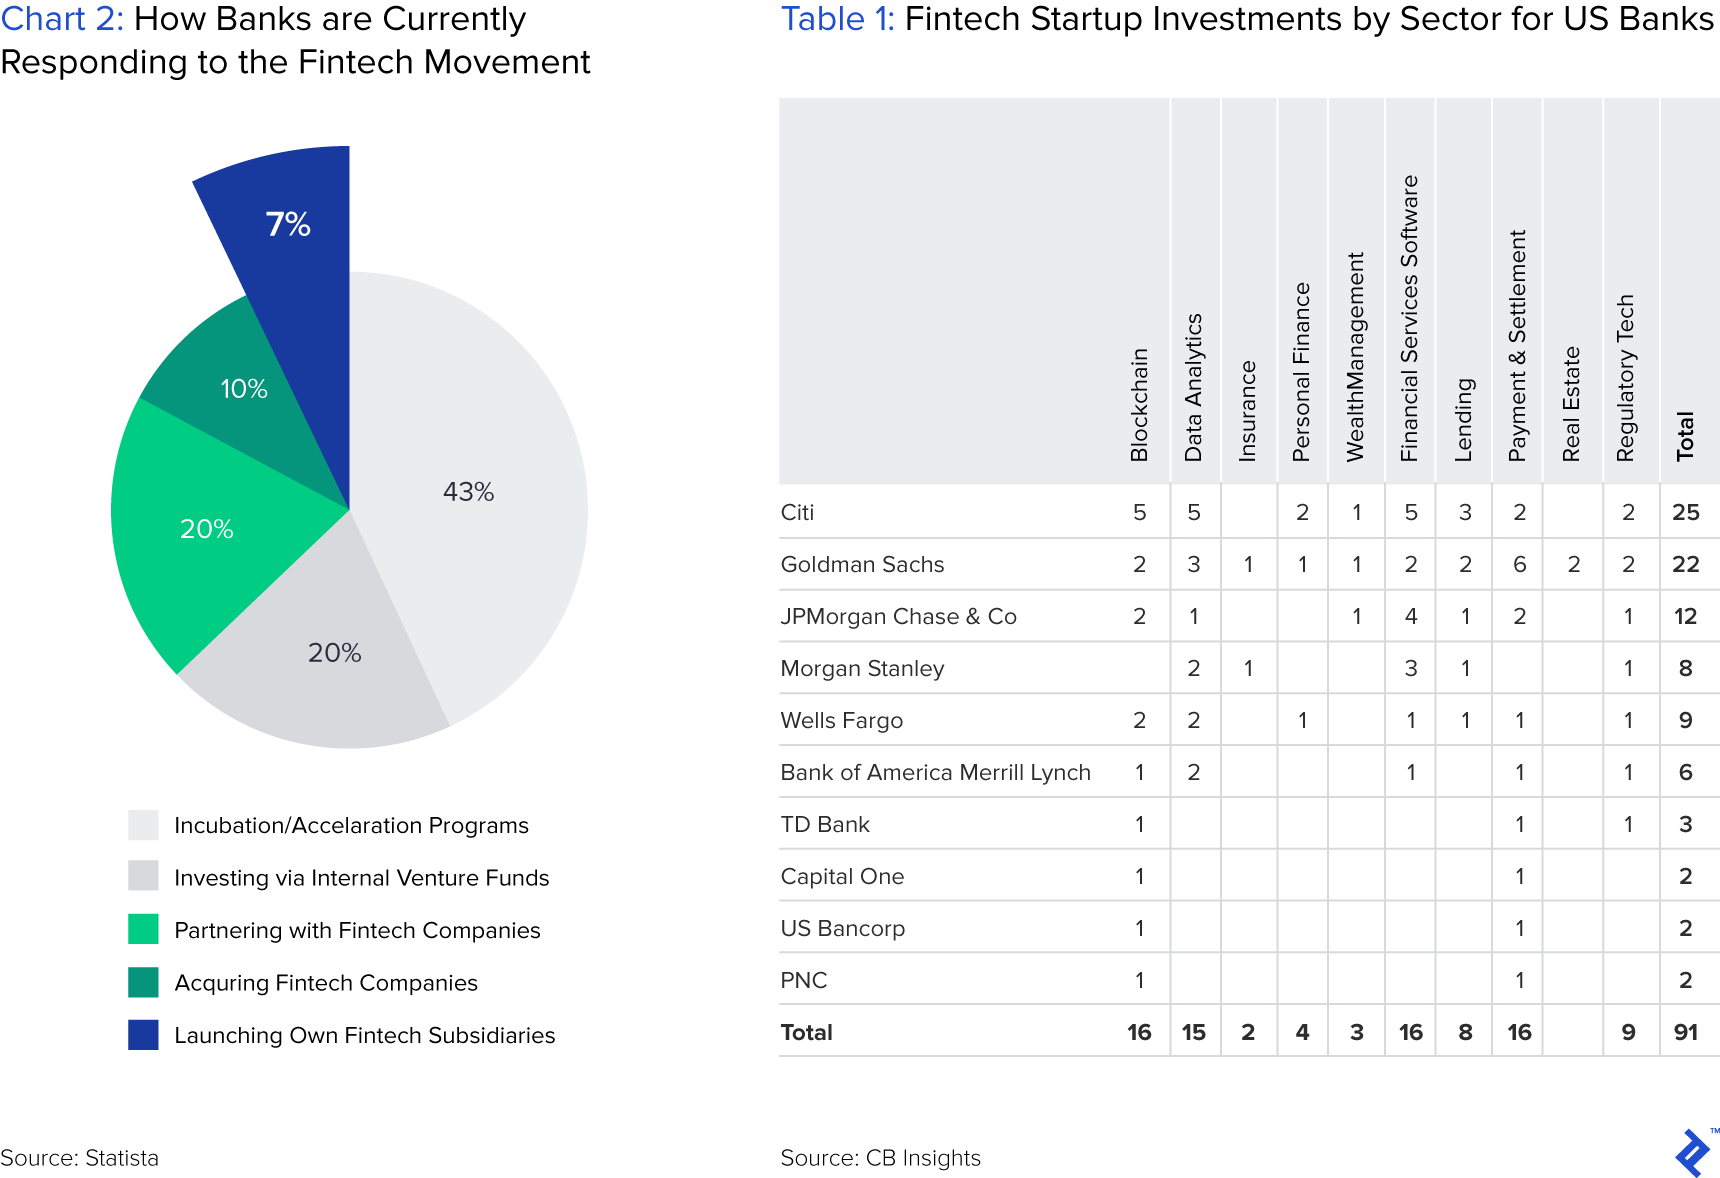 Chart 2: How Banks Are Currently Responding to the Fintech Movement, and Table 1: Fintech Startup Investments by Sector for US Banks